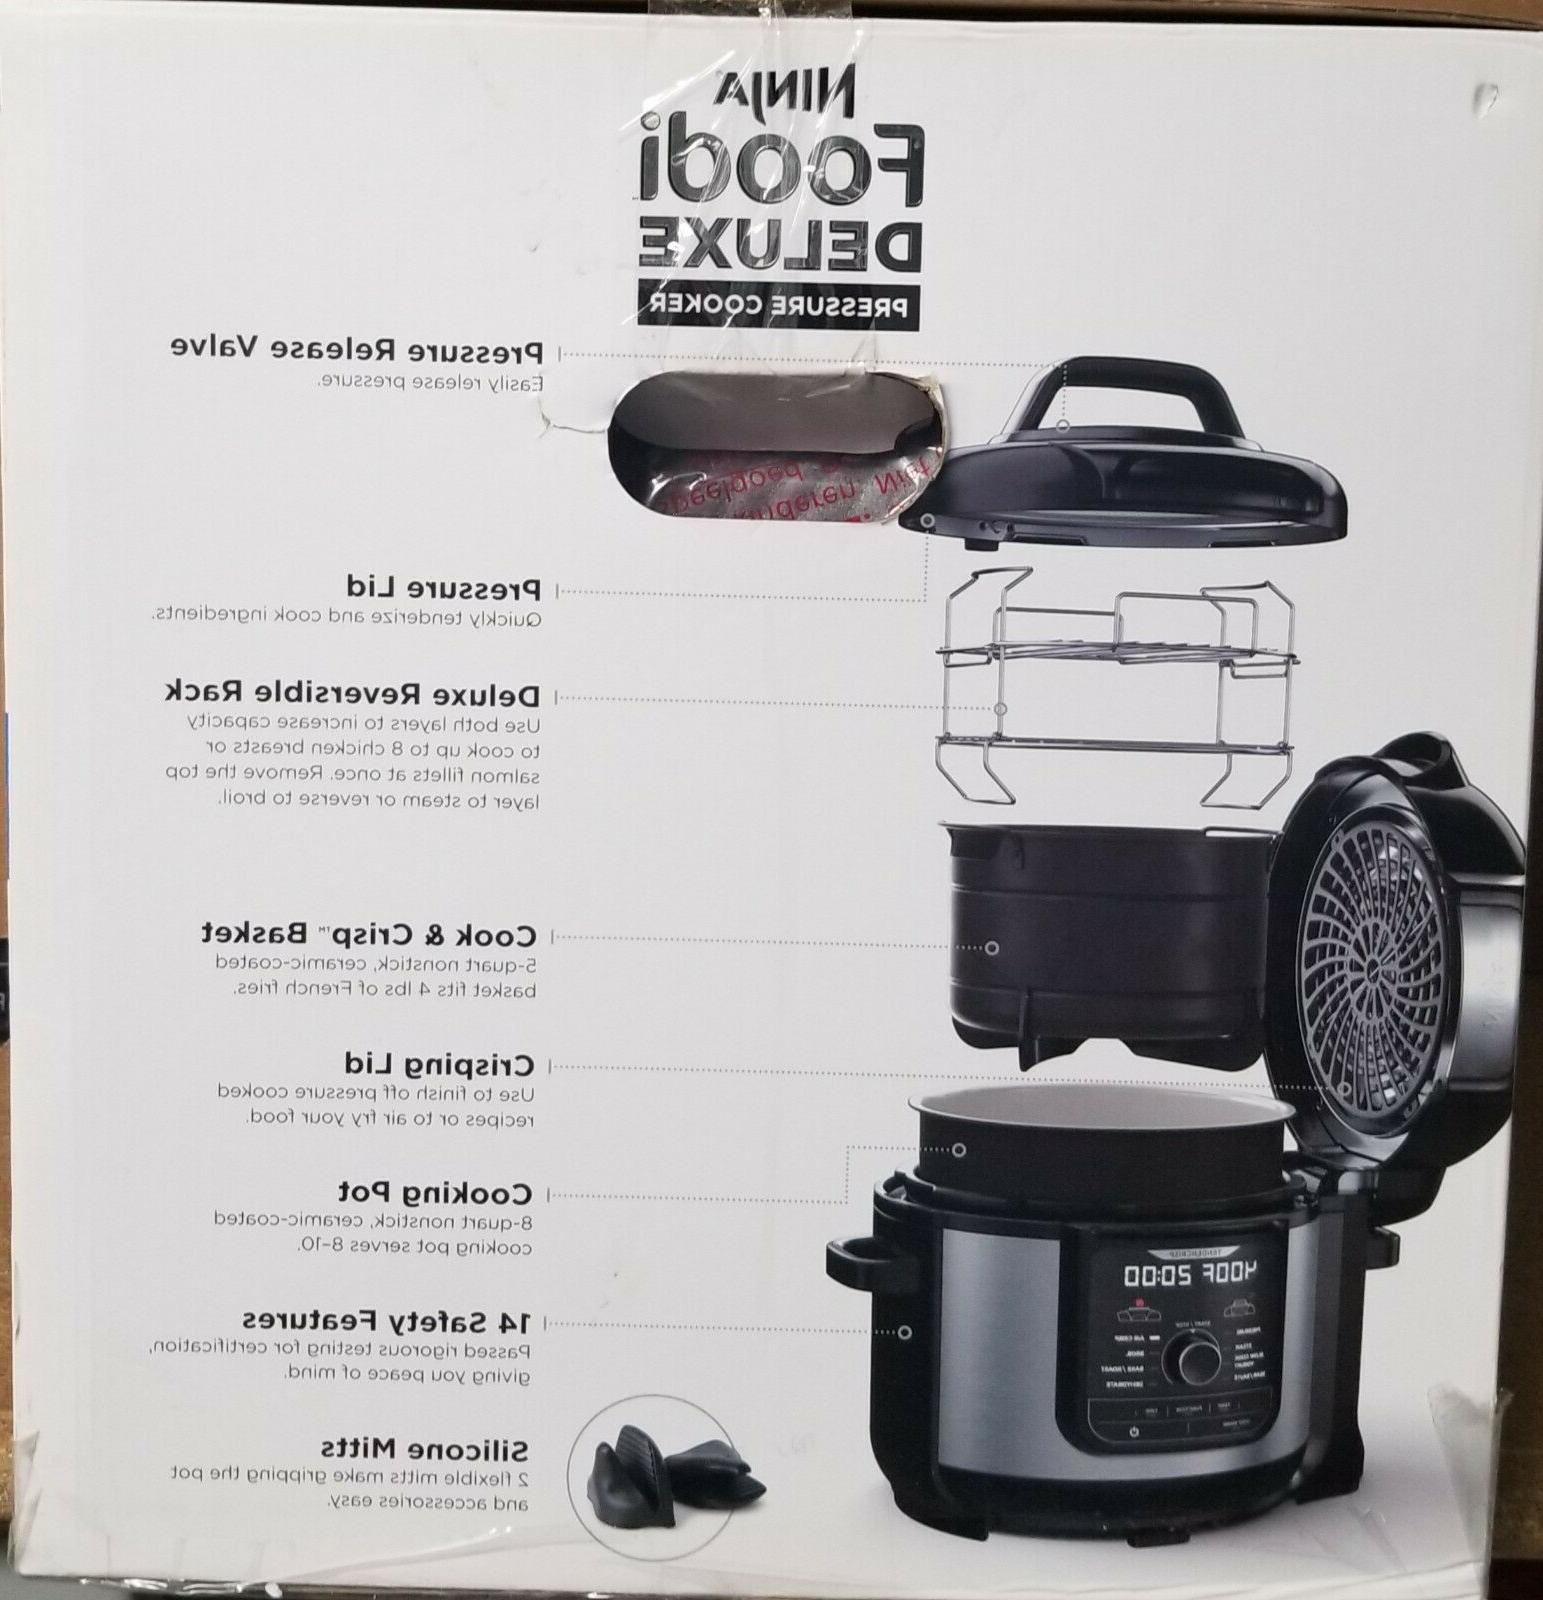 NEW Ninja Foodi 9-in-1 Cooker